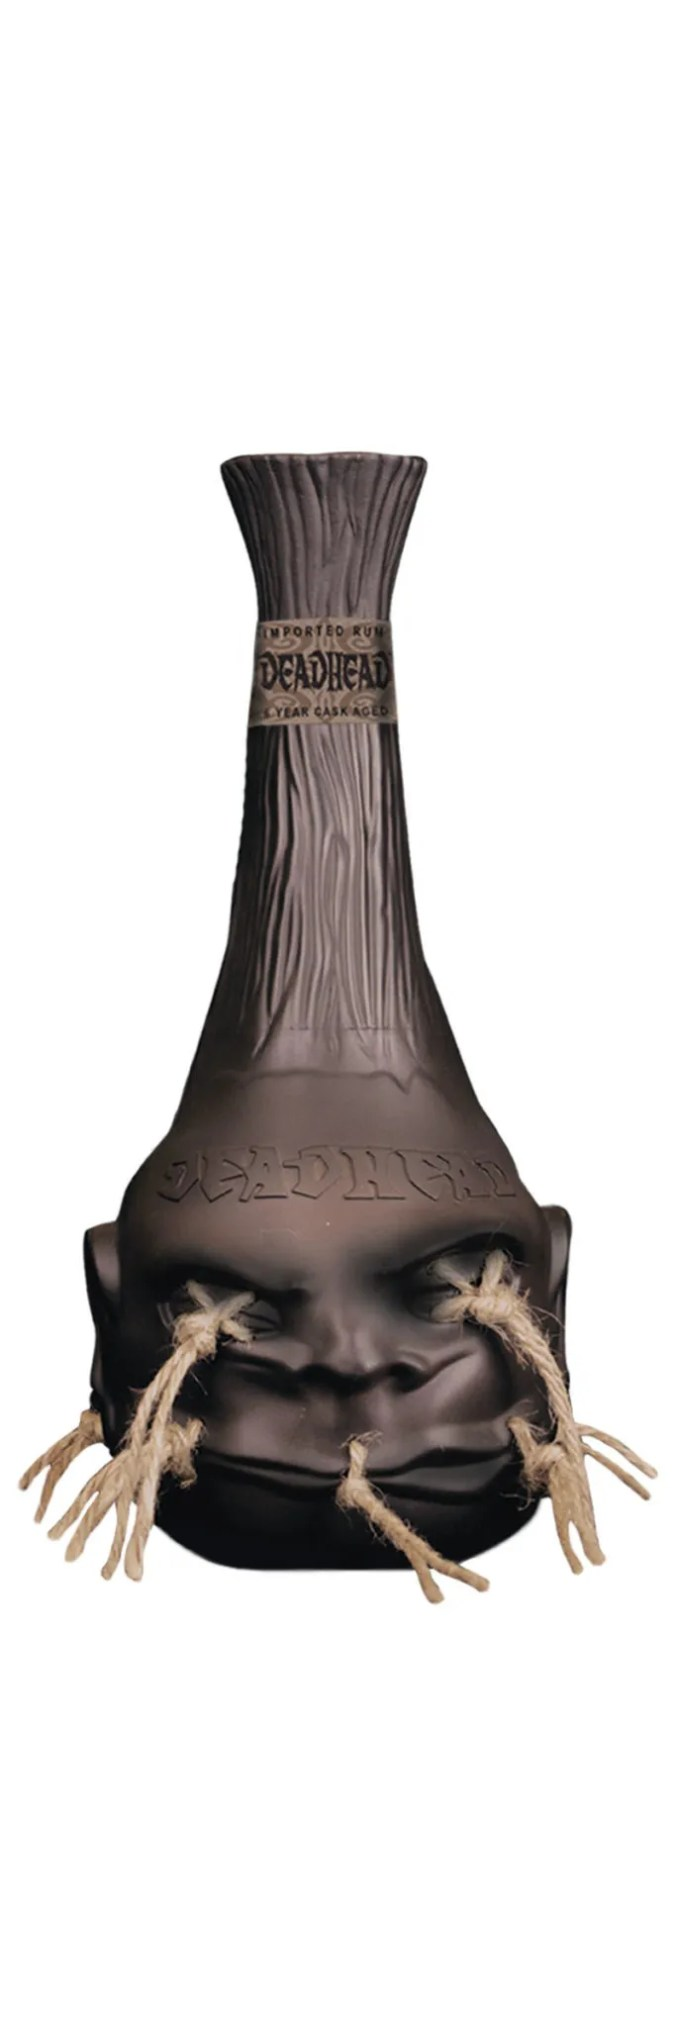 The iconic shrunken head bottle of Deadhead rum contains a 6 year old aged rum produced at the Bonampak distillery in Mexico.